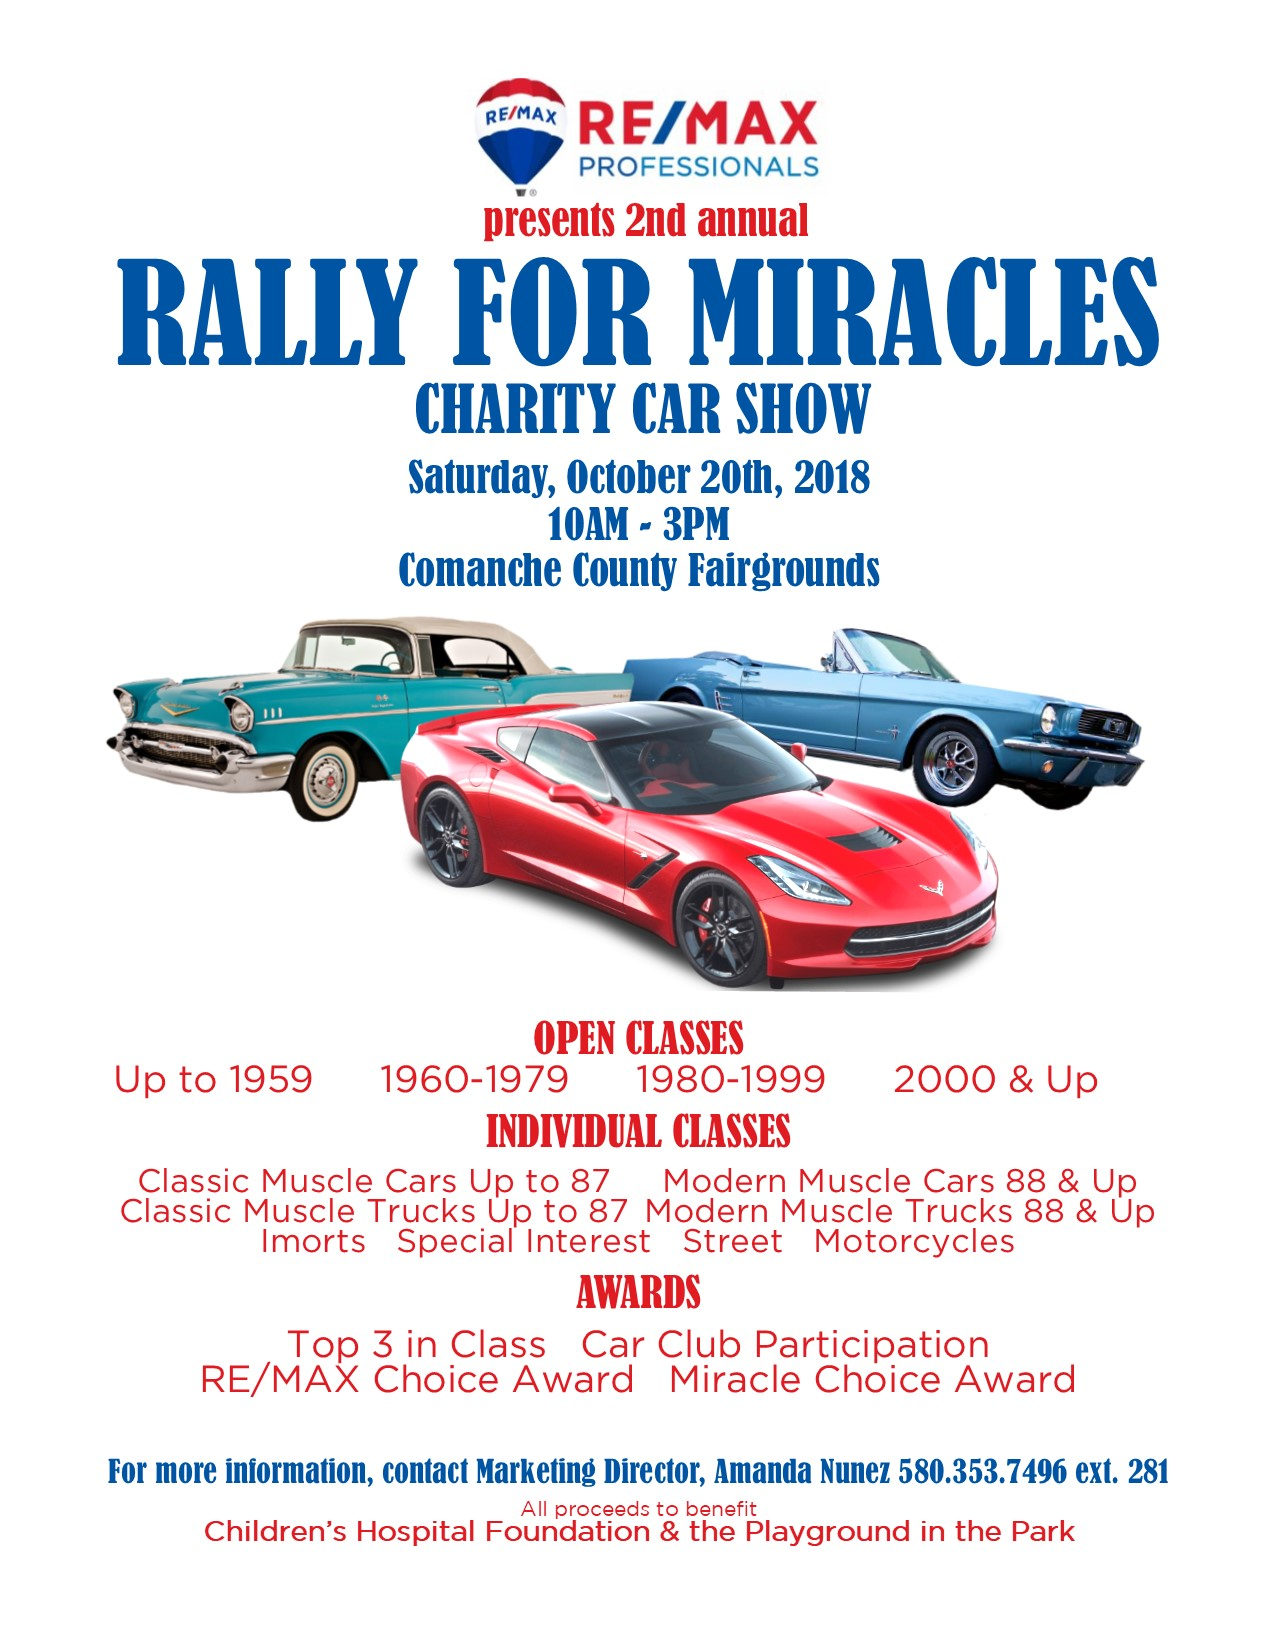 Oklahoma Area Car Shows And Events Listing We List Oklahoma Area - Colorado car show calendar